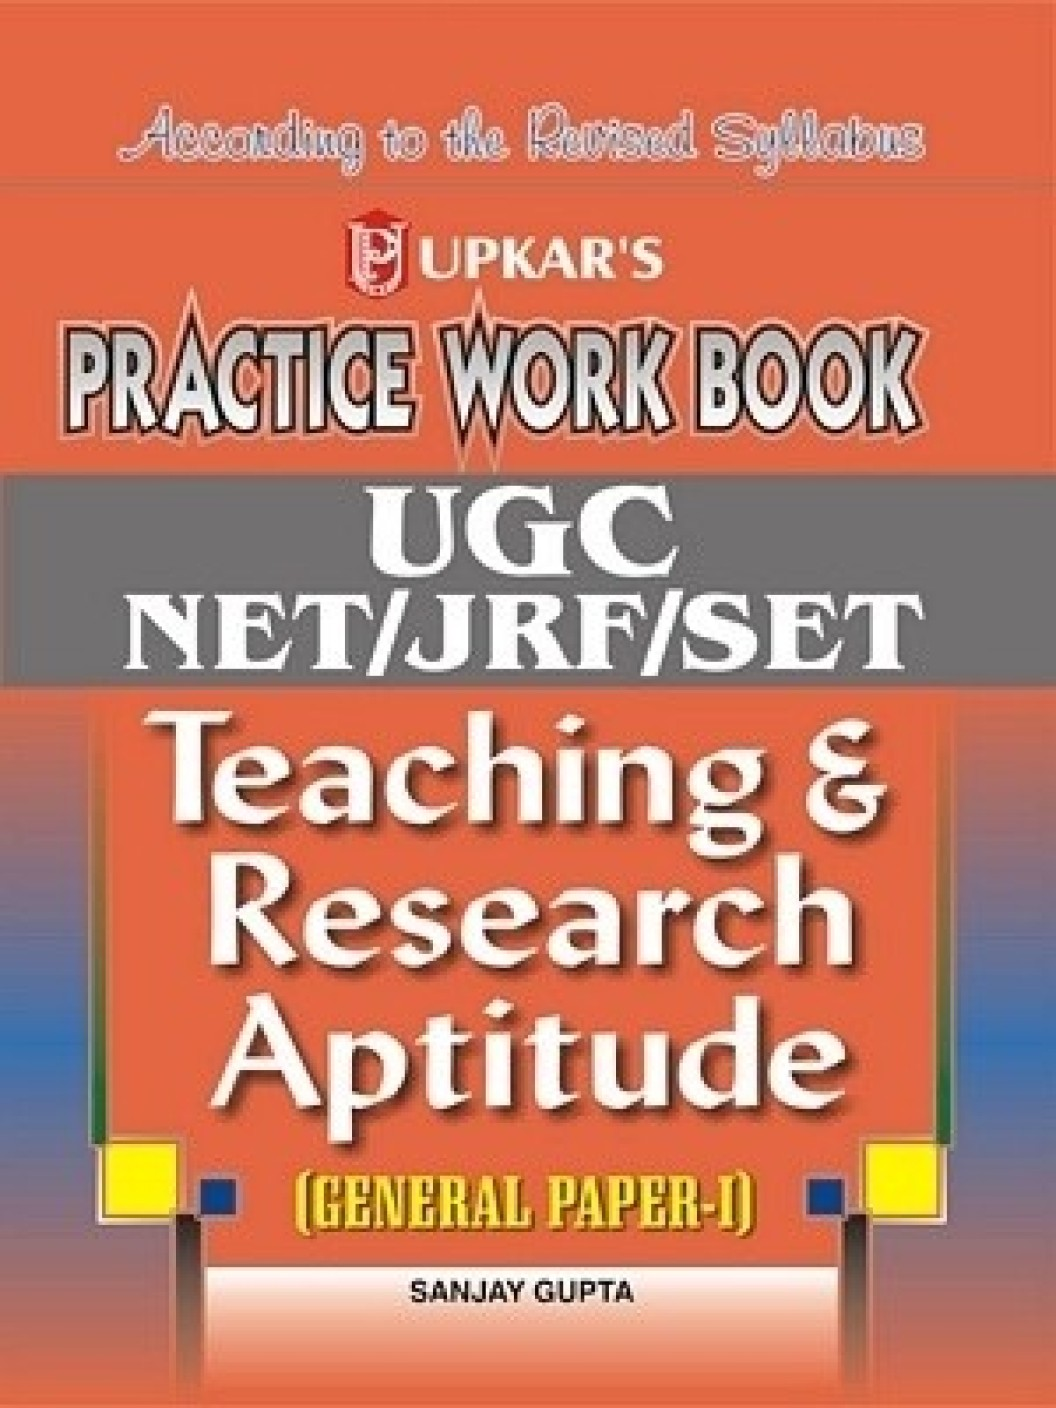 general paper on teaching and research aptitude Ugc net teaching and research aptitude (paper-i) solved paper ugc-net/jrf examination, 2012 teaching and research aptitude (paper-i) (held in december 2012)  the president appoints a person, who is qualified to be a judge of a high court, to be the attorney-general of india 2 he has the right of audience in all the courts of the country.